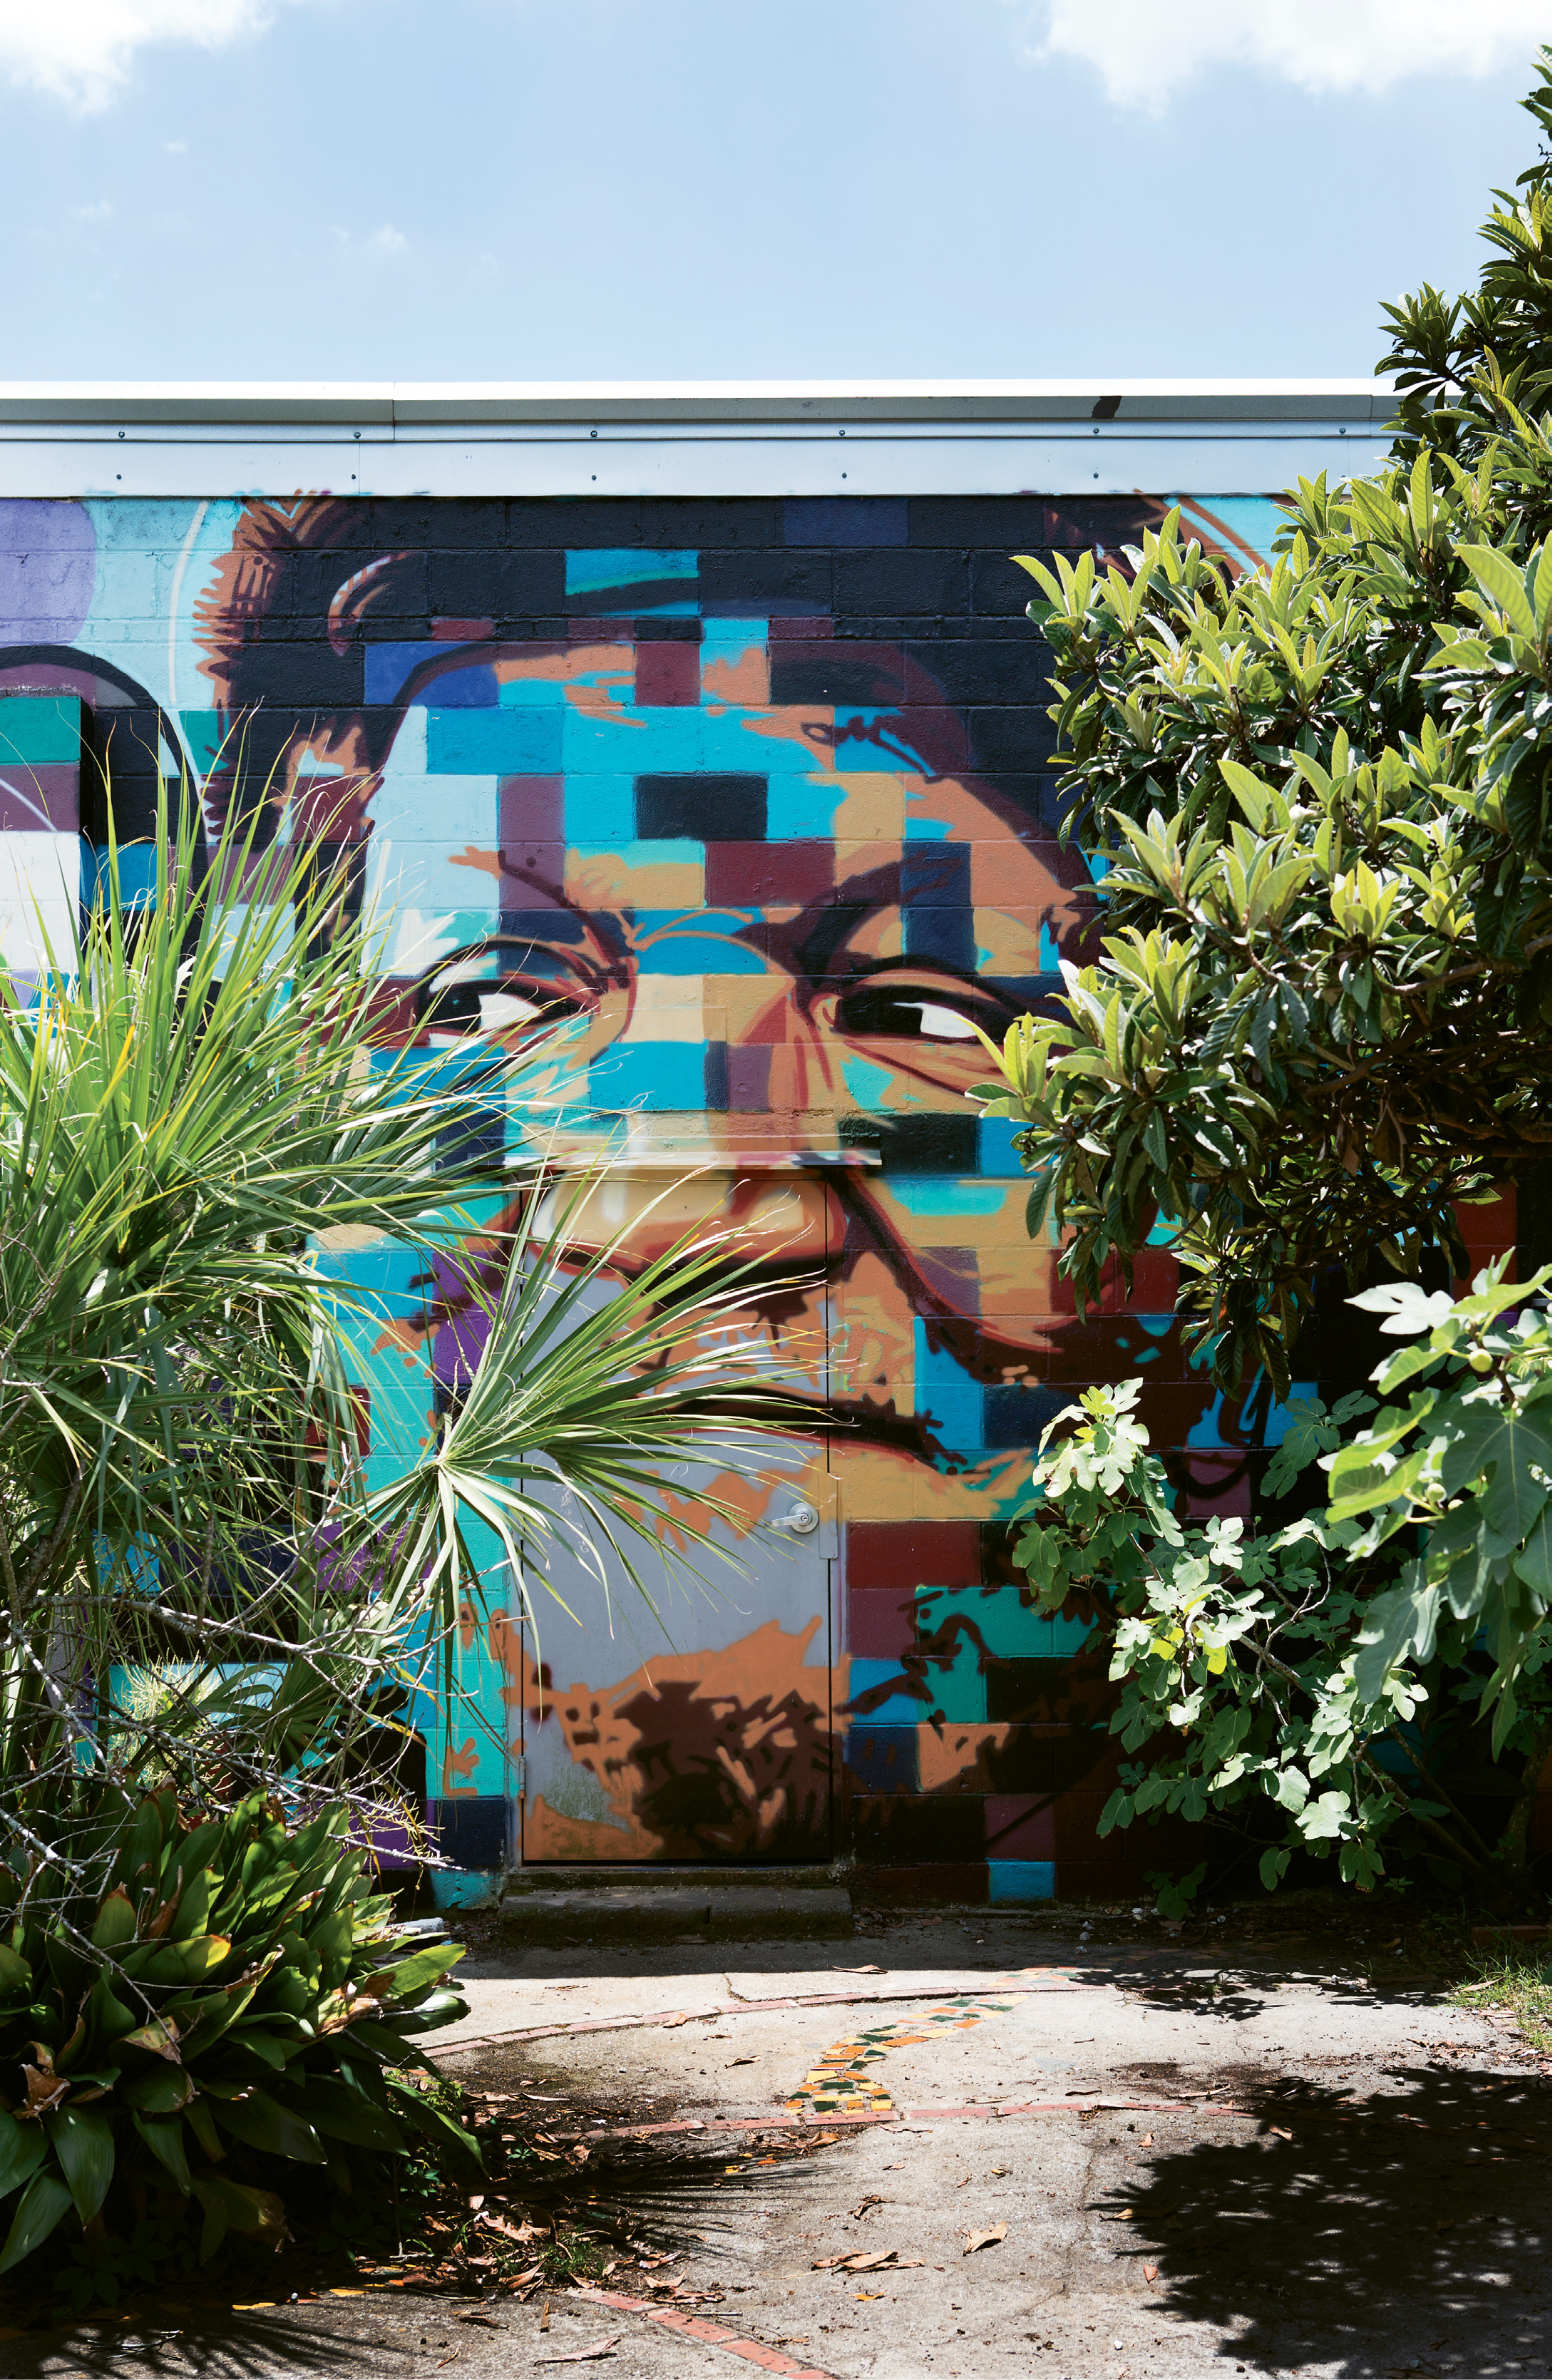 Redd Foxx (OPPOSITE)  By Sean Williams  Fall 2015  4845 Chateau ave.  The local artist, muralist, and metalsmith painted this homage to the comedian and star of the 1970s sitcom Sanford and Son on the studio he shares with Patch Whiskey.